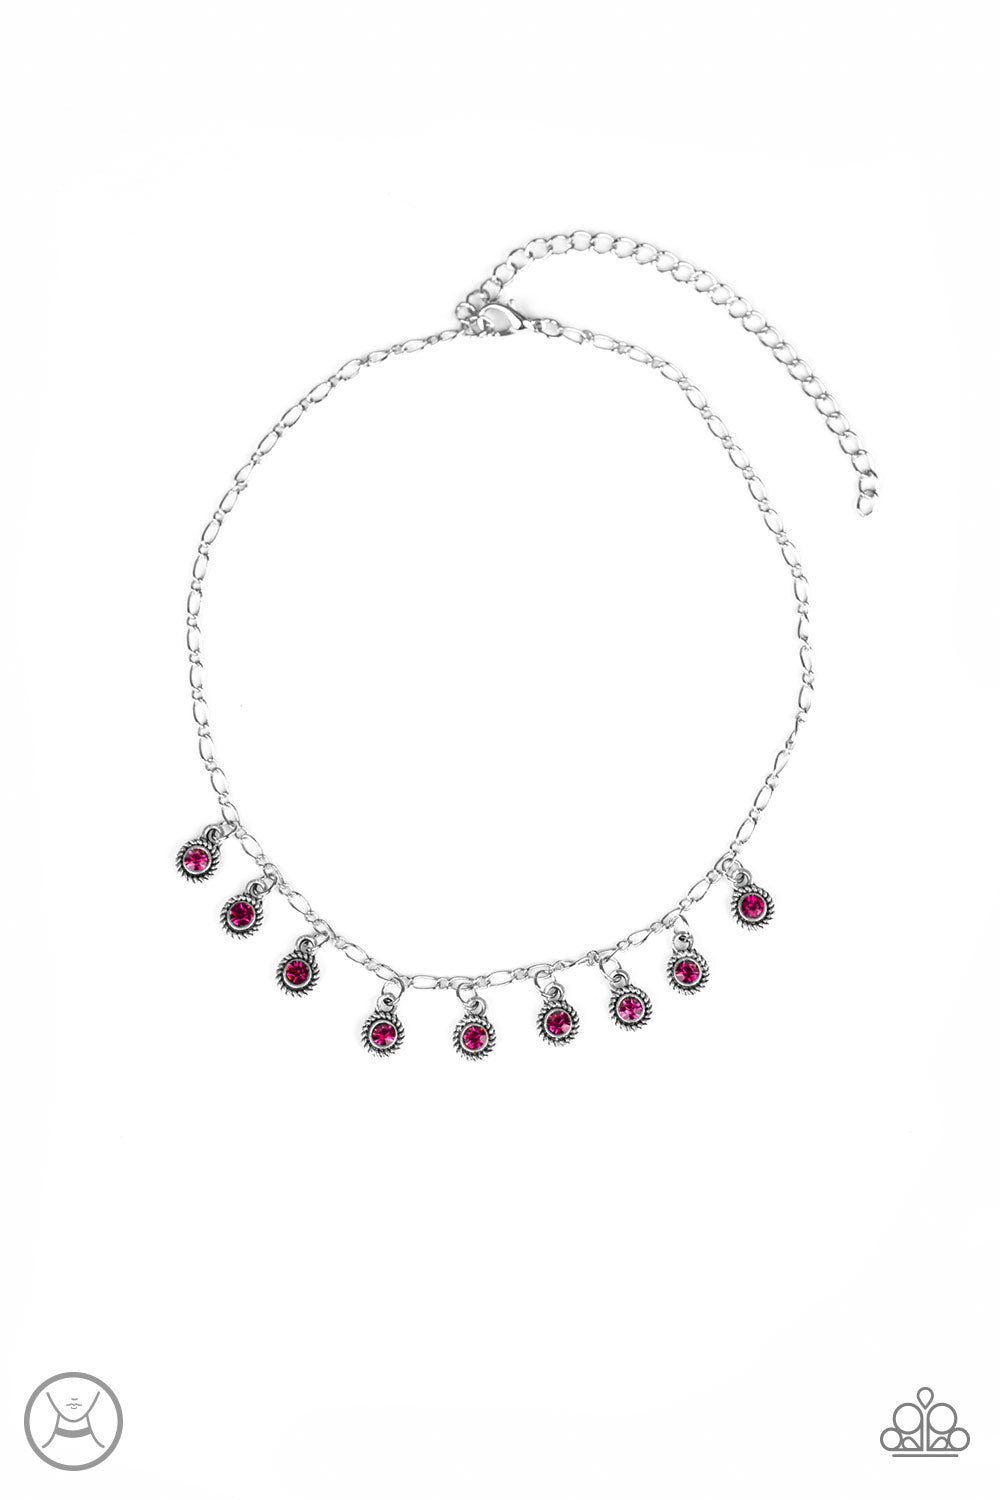 Paparazzi Accessories - Popstar Party - Pink Necklace Set - JMJ Jewelry Collection